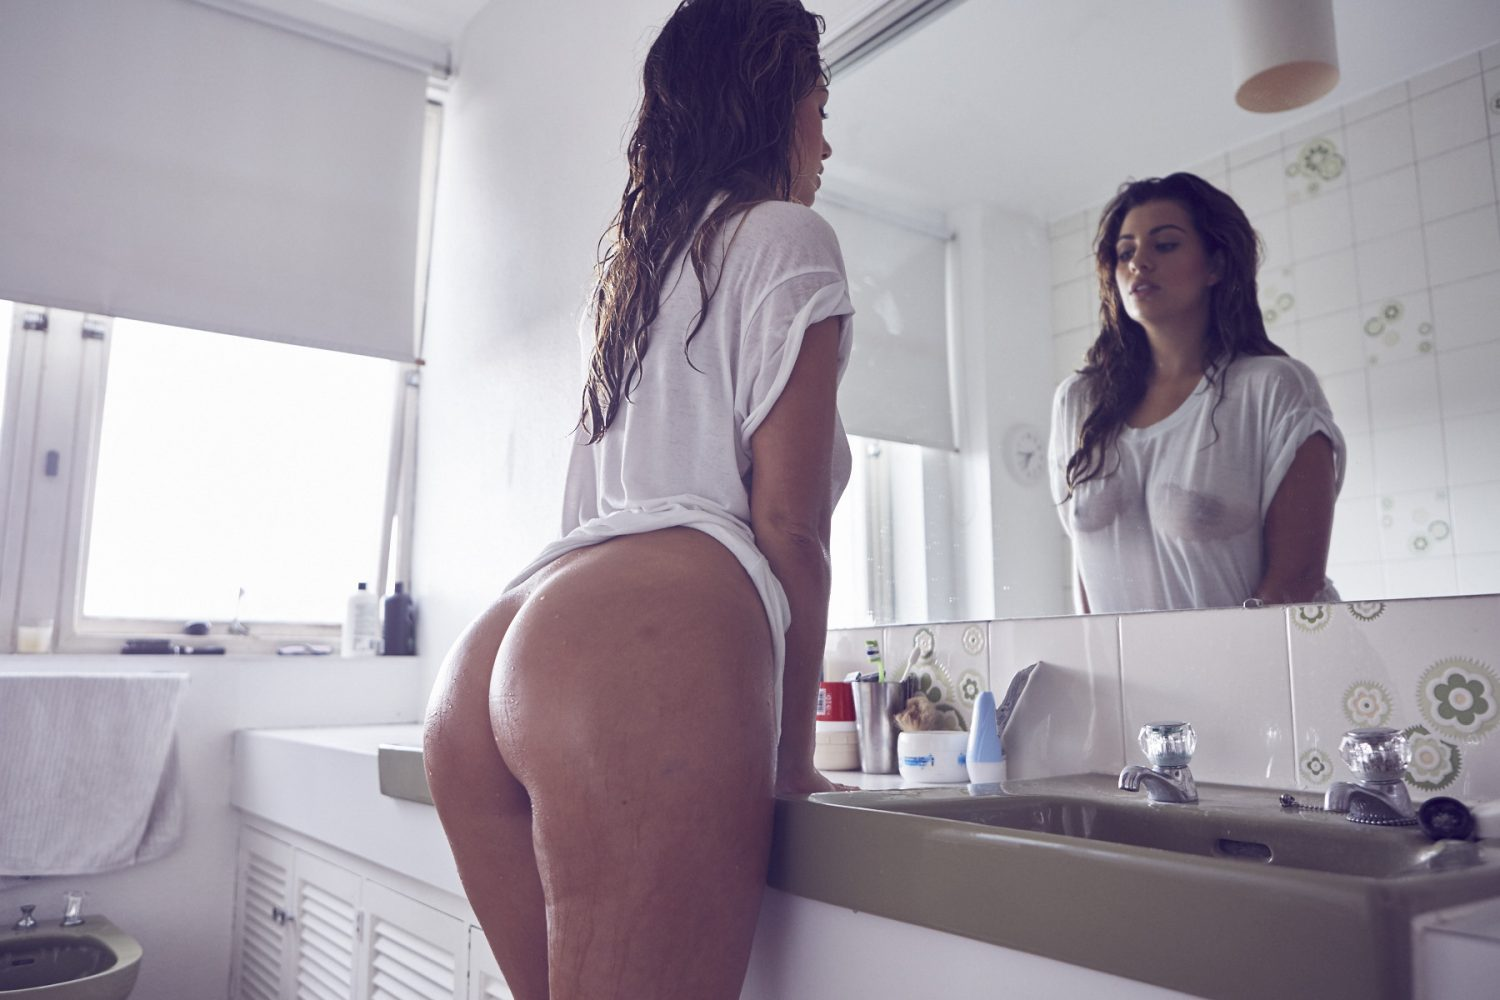 holly peers: cleans up - may contain girl